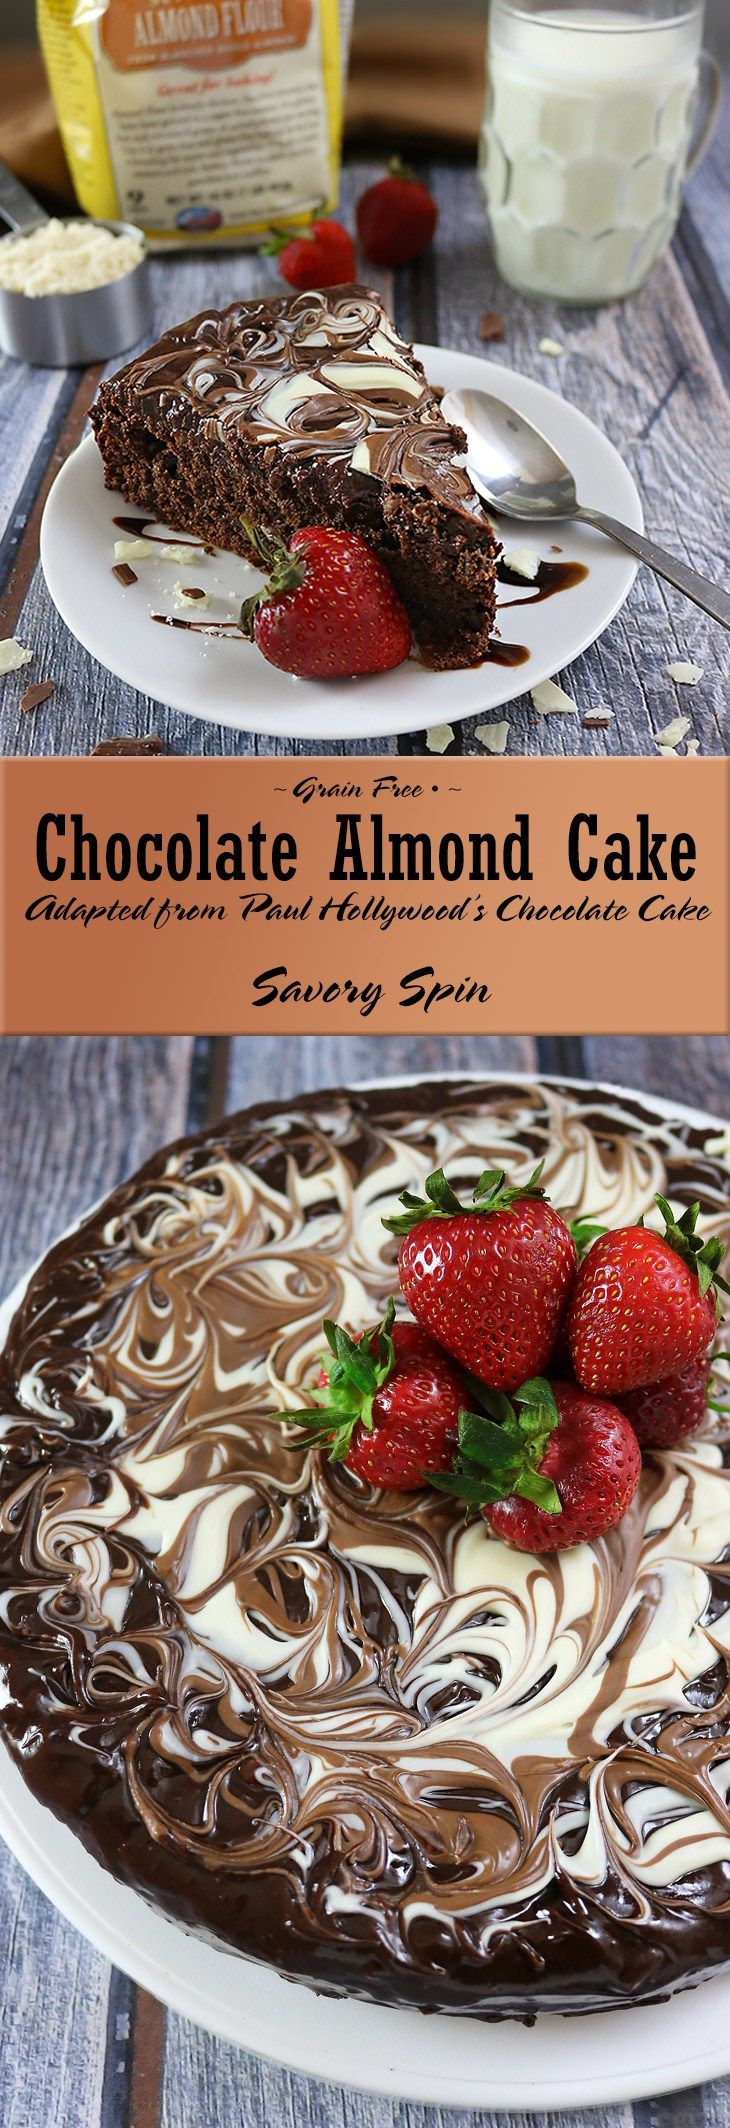 Gluten Free Chocolate Almond Cake  #BobsRedMill #chocolate  @PaulHollywood @BobsRedMill